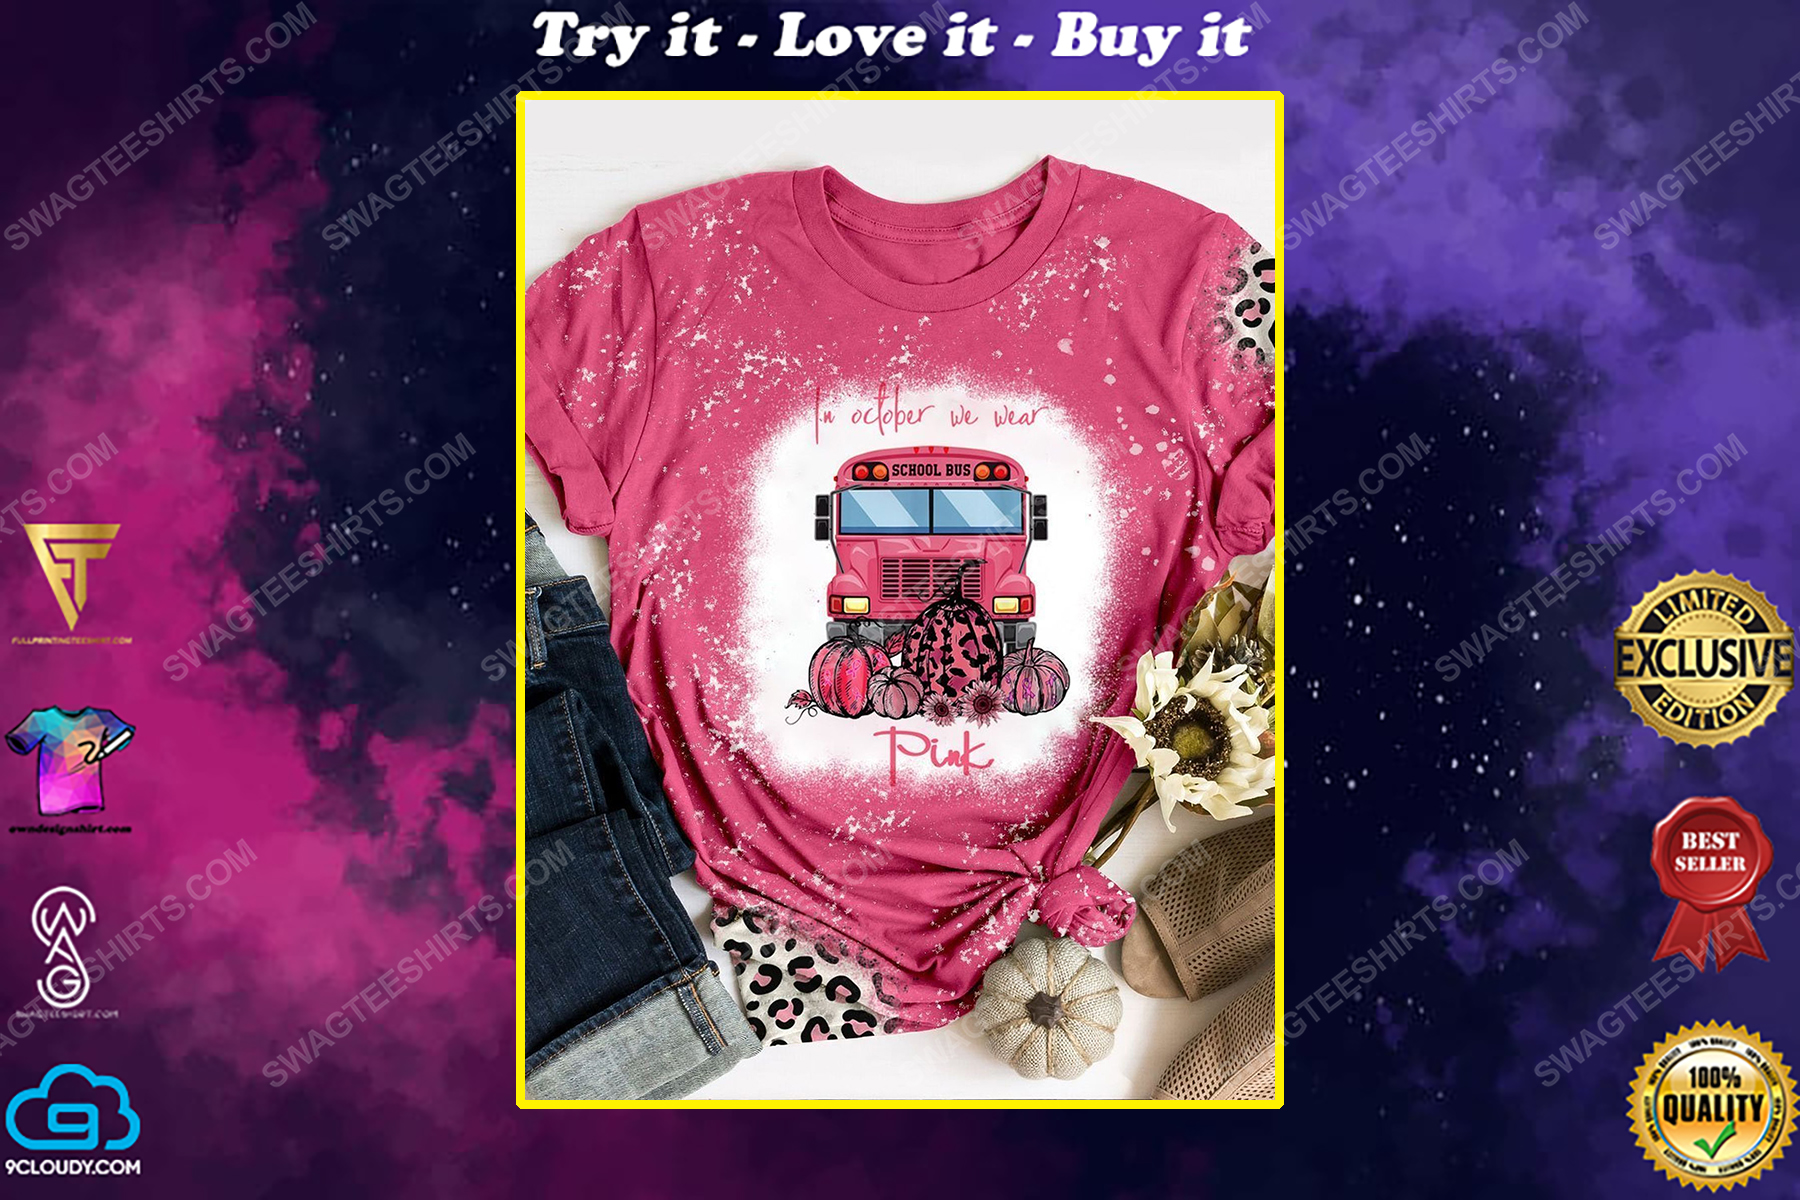 Breast cancer awareness in october we wear pink cat and butterfly shirt